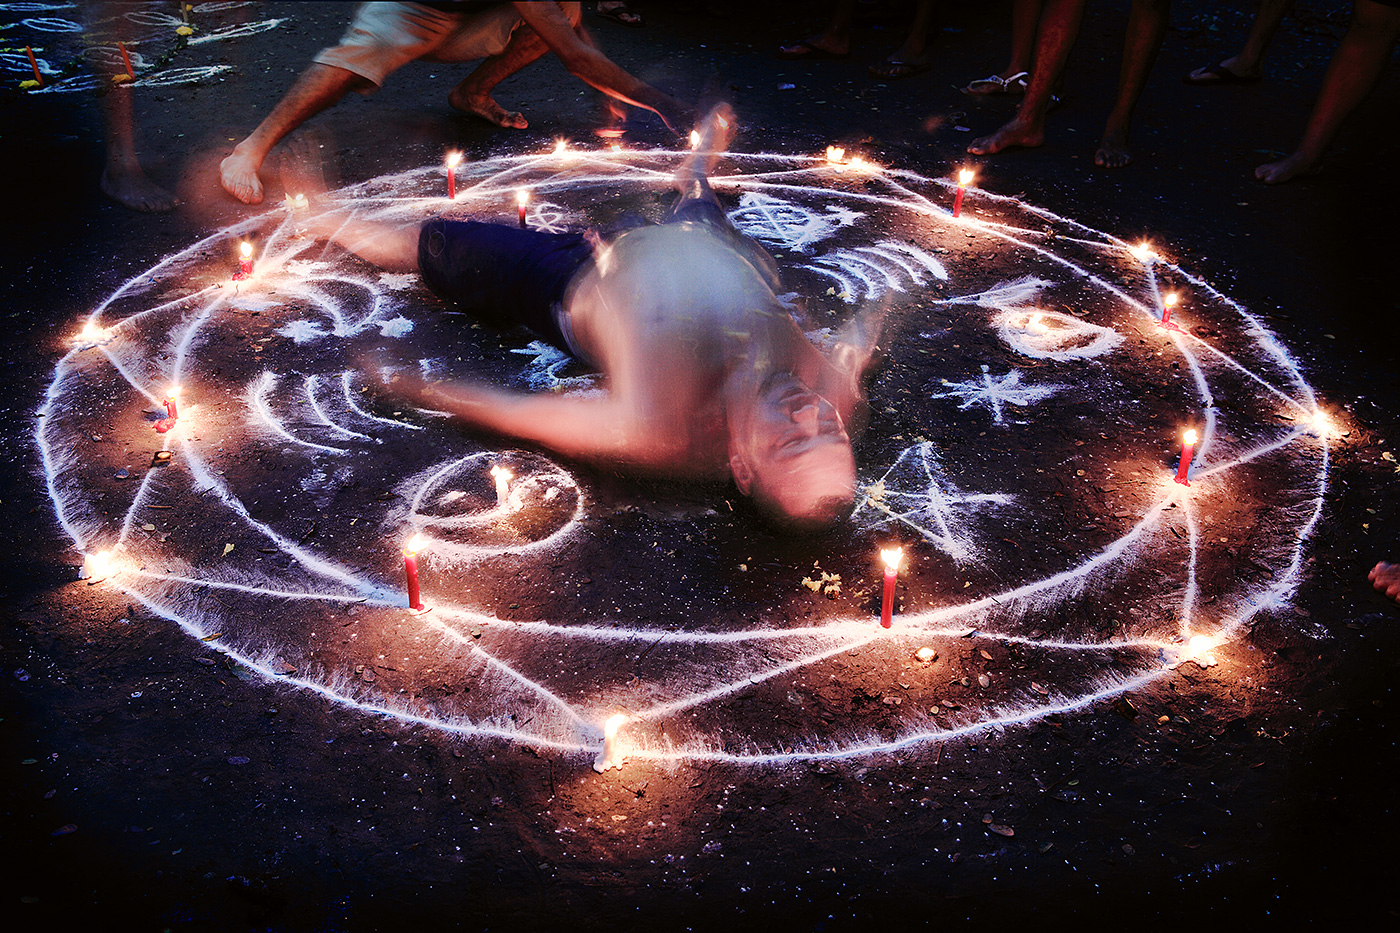 Writhing in convulsions, the power of the oracle brings this man into a trance as the spirit enters his body.